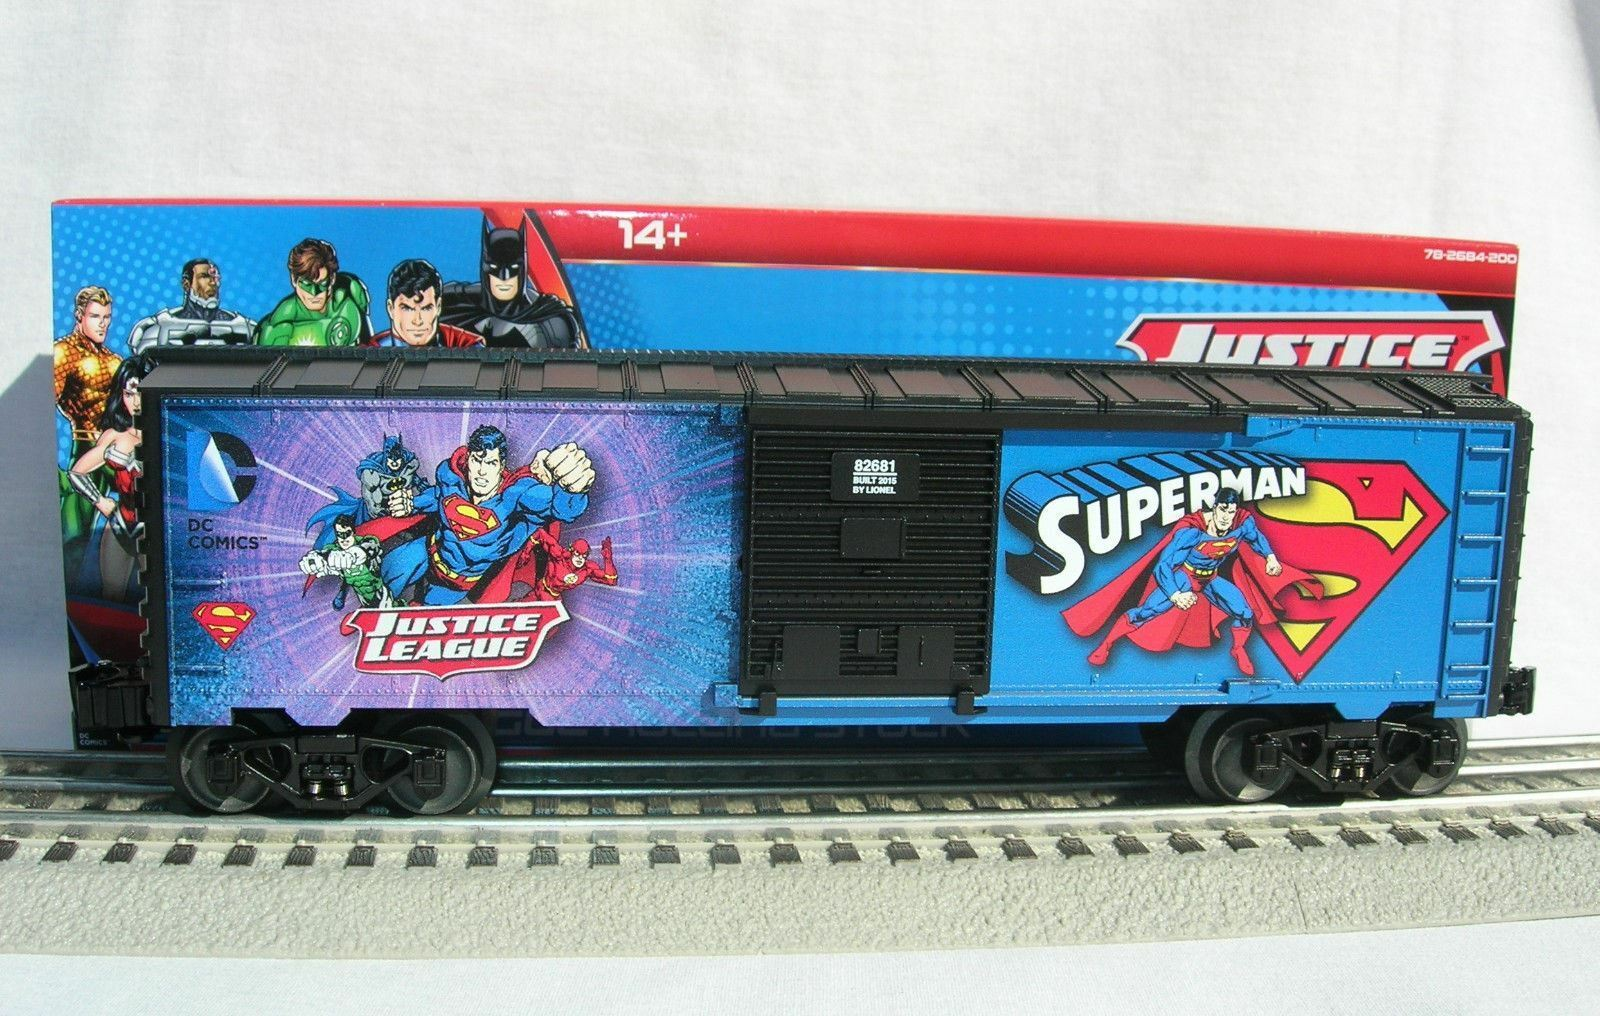 LIONEL 682681 JUSTICE LEAGUE SUPERuomo scatolaauto O GAUGE TRAIN DC COMICS